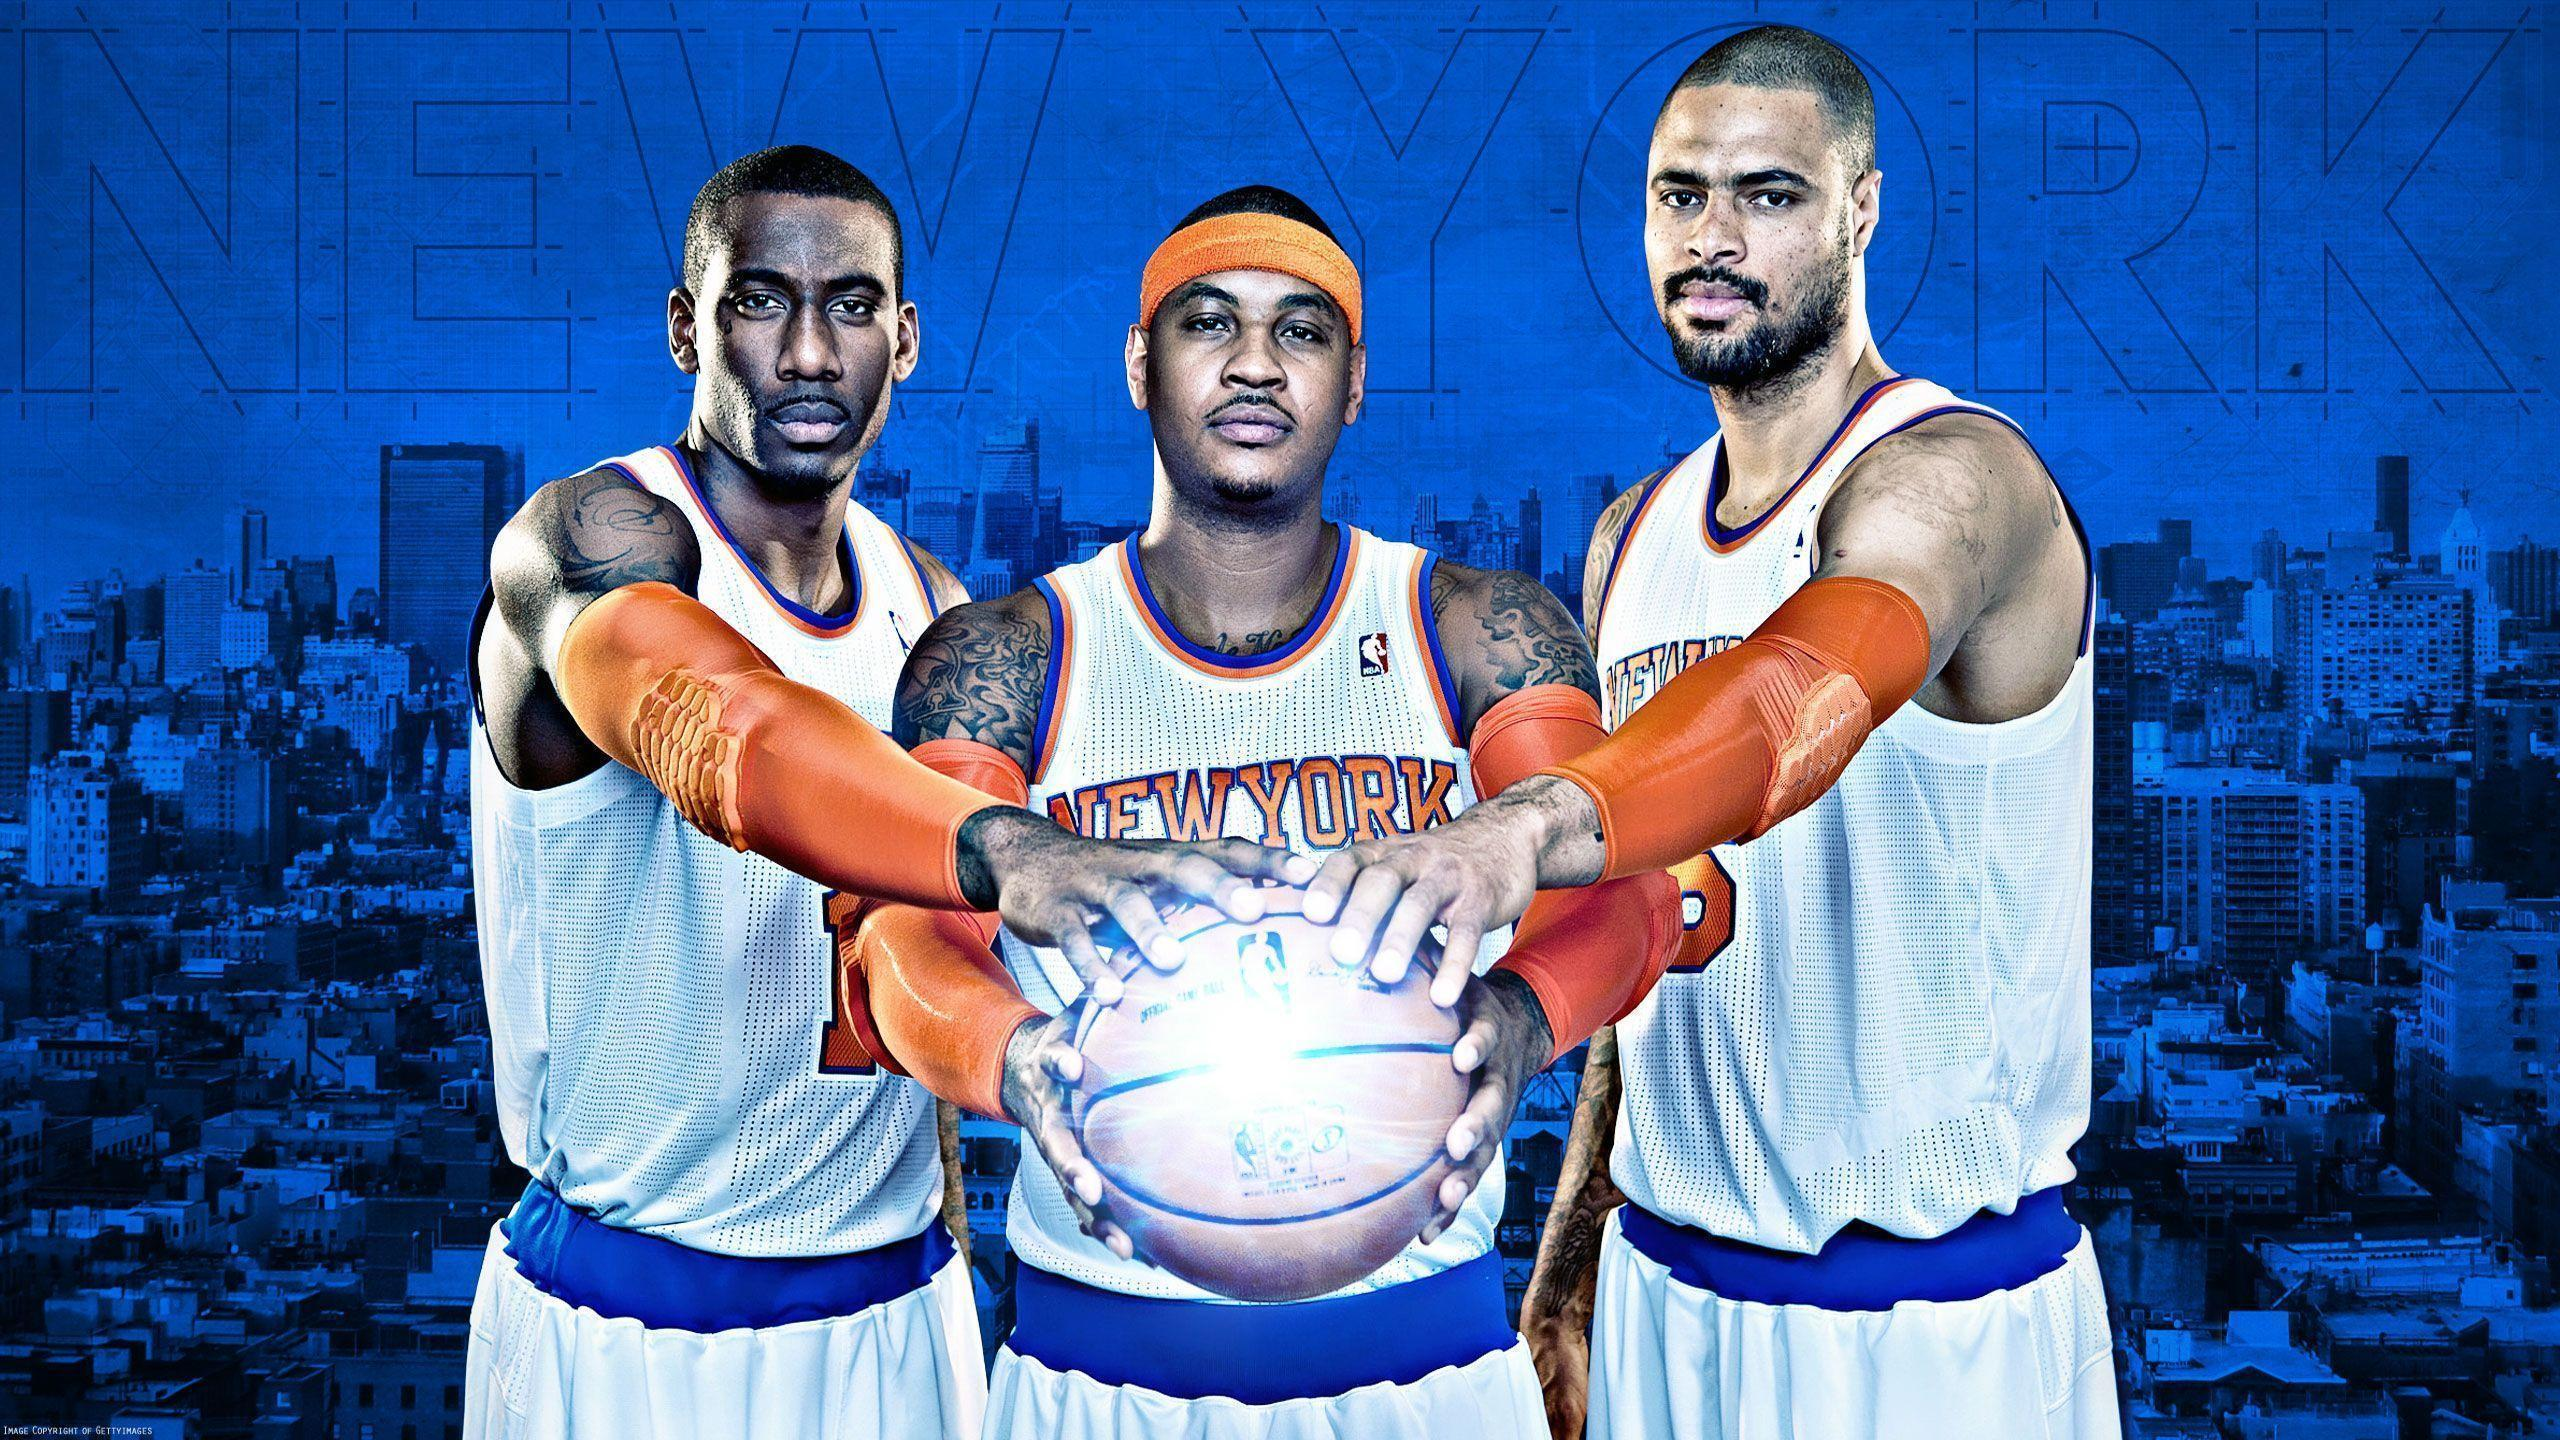 Knicks 2013 Big 3 2560x1440 Wallpapers